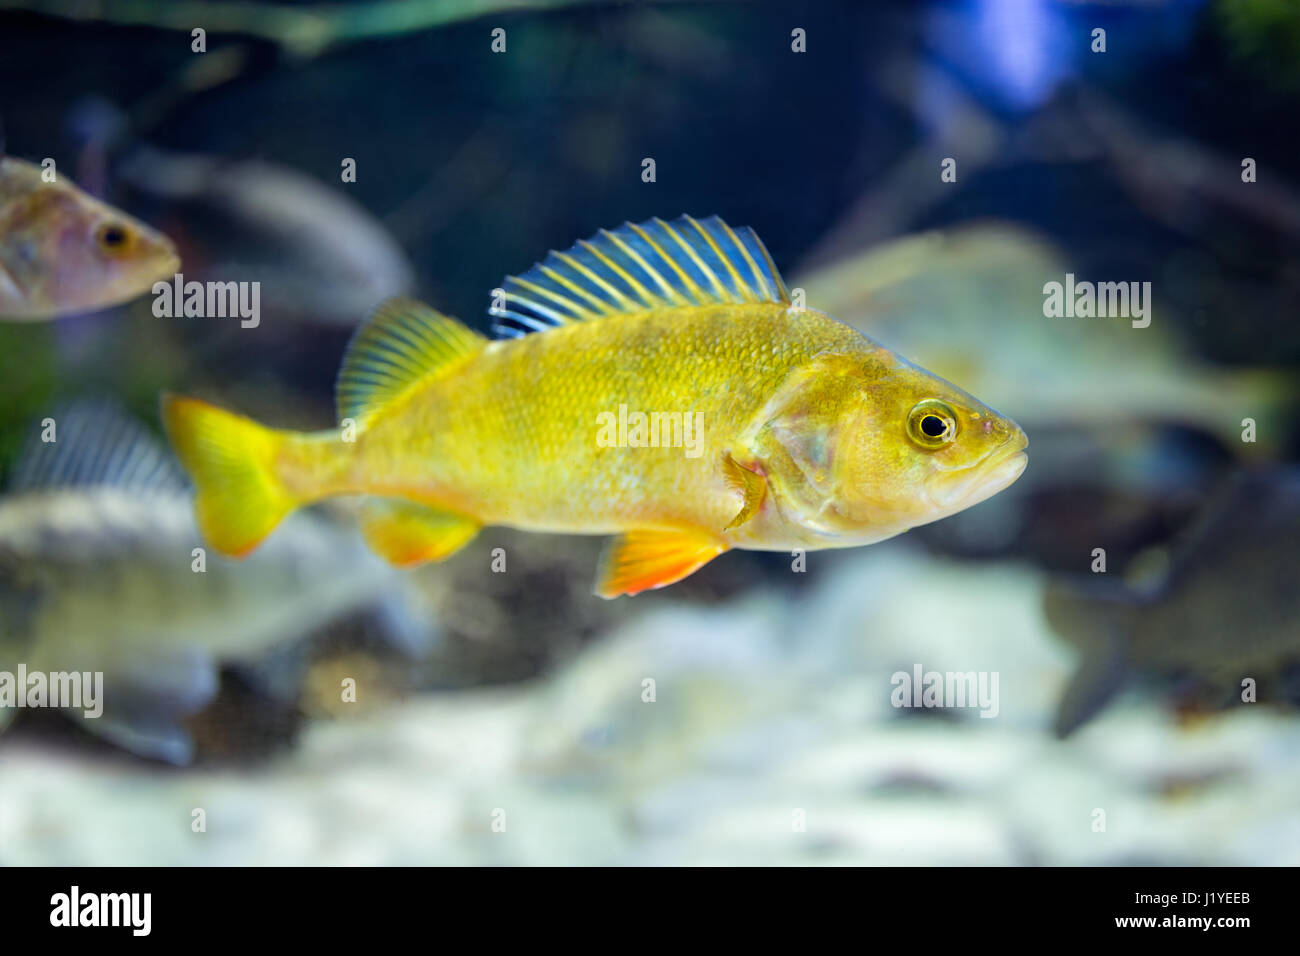 Aquarium gravel stock photos aquarium gravel stock for Cute freshwater fish